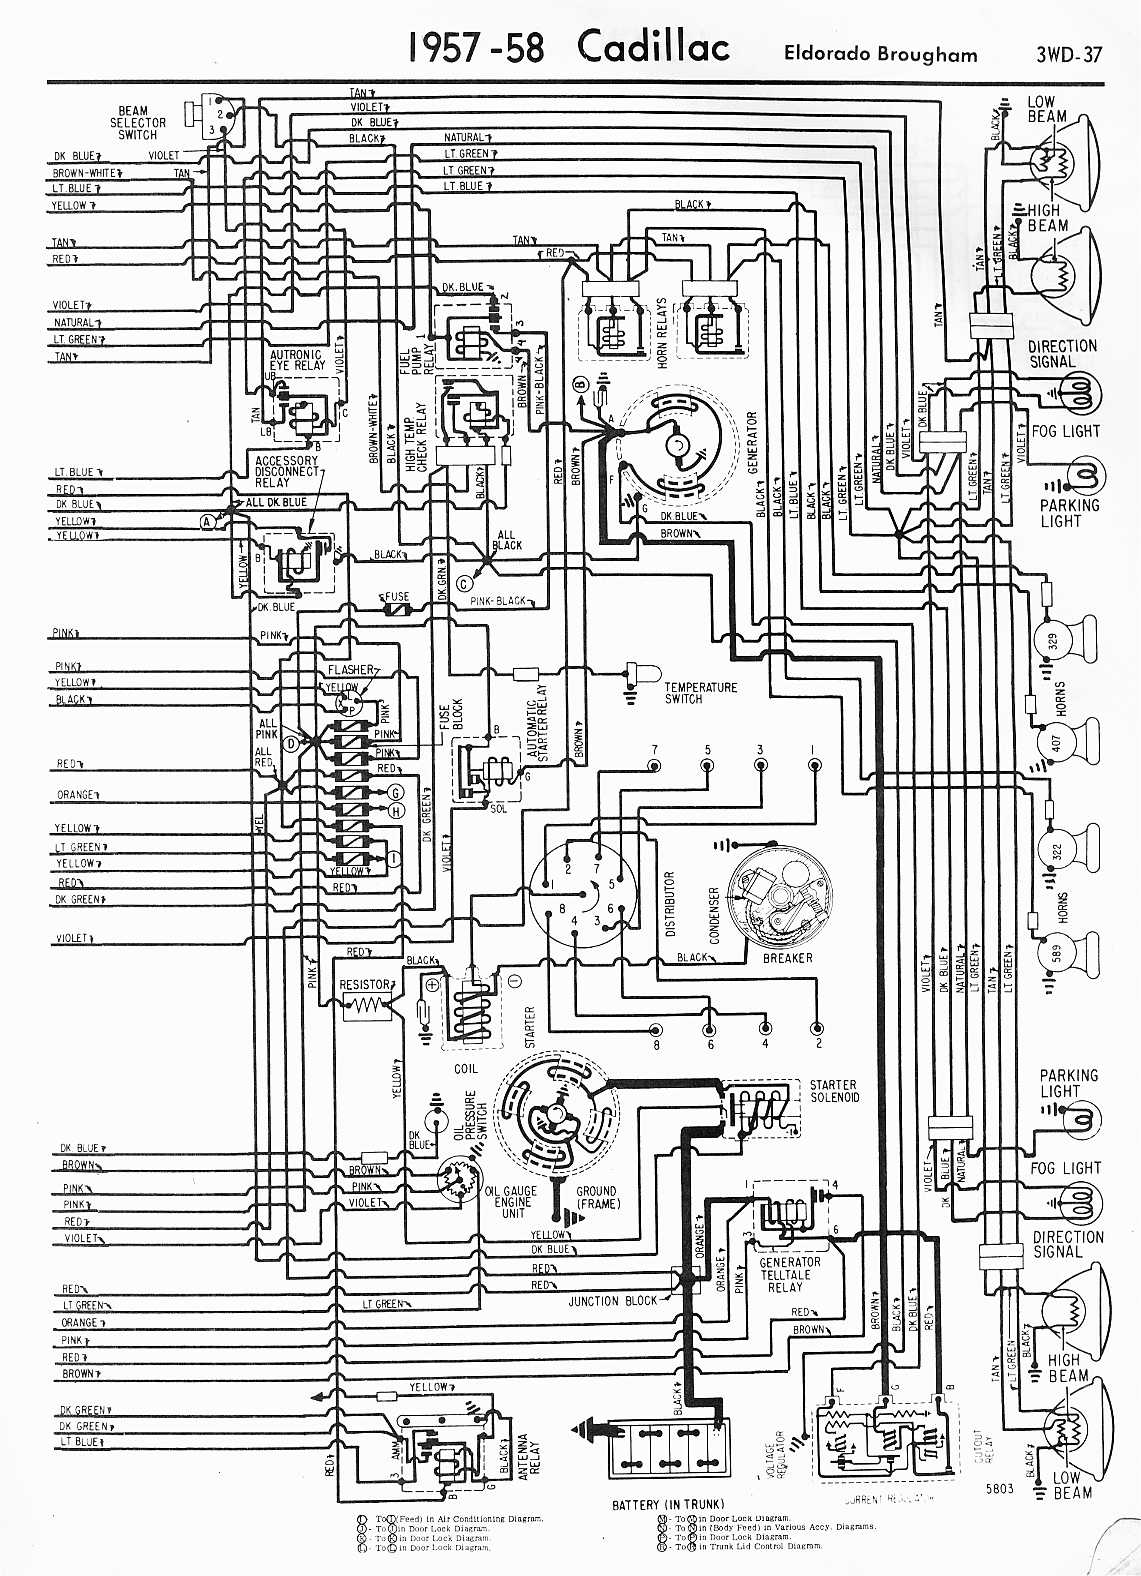 Cadillac Deville Engine Schematic Where Is Fuse Box For 2004 04 Pacifica Wiring Diagram Free Picture 1956 Schemes Chrysler 1961